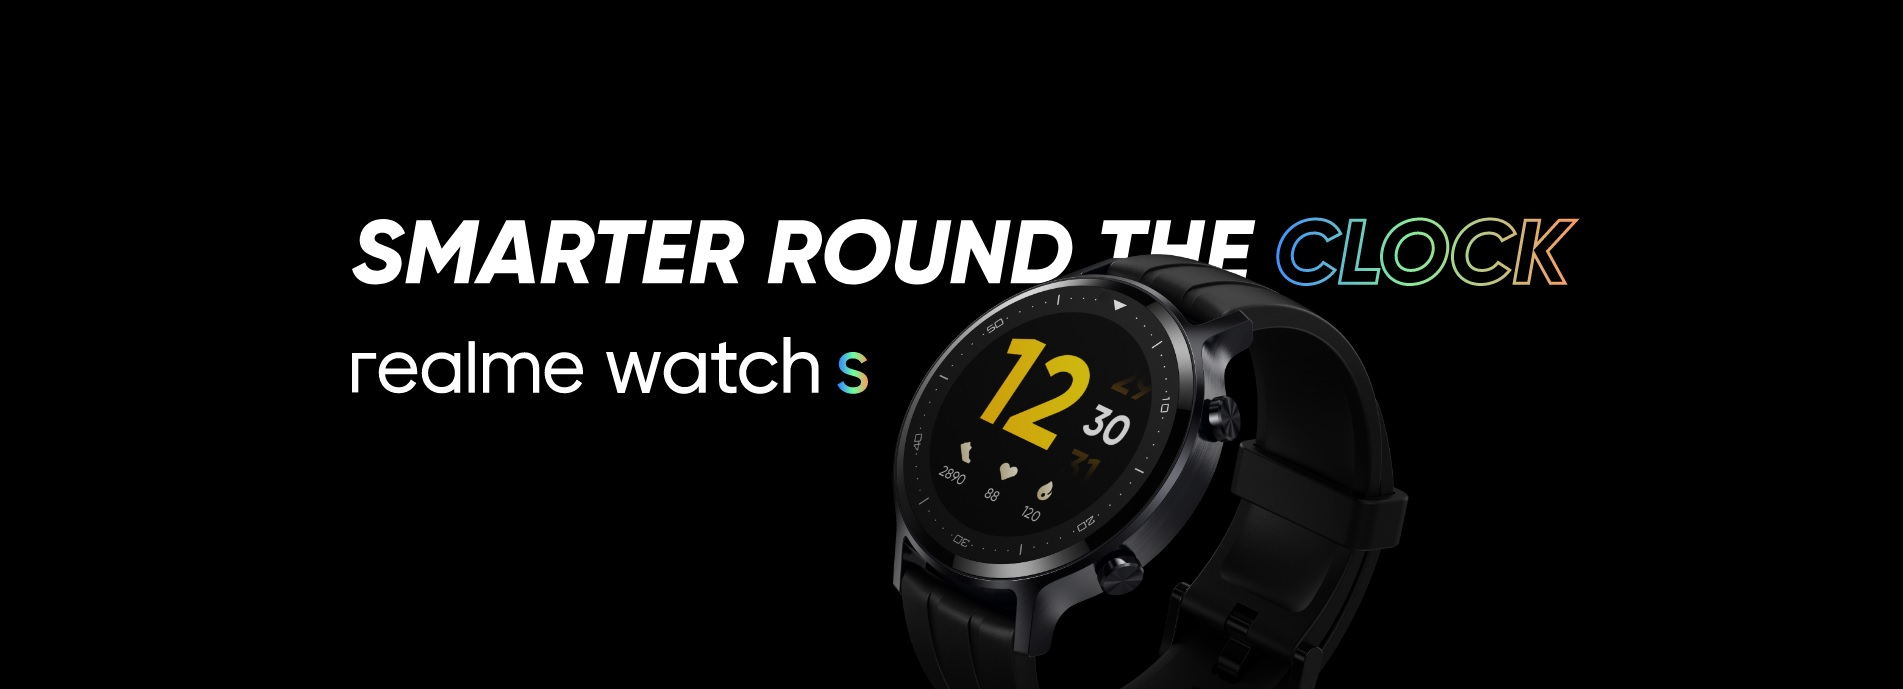 realme Watch S smartwatch